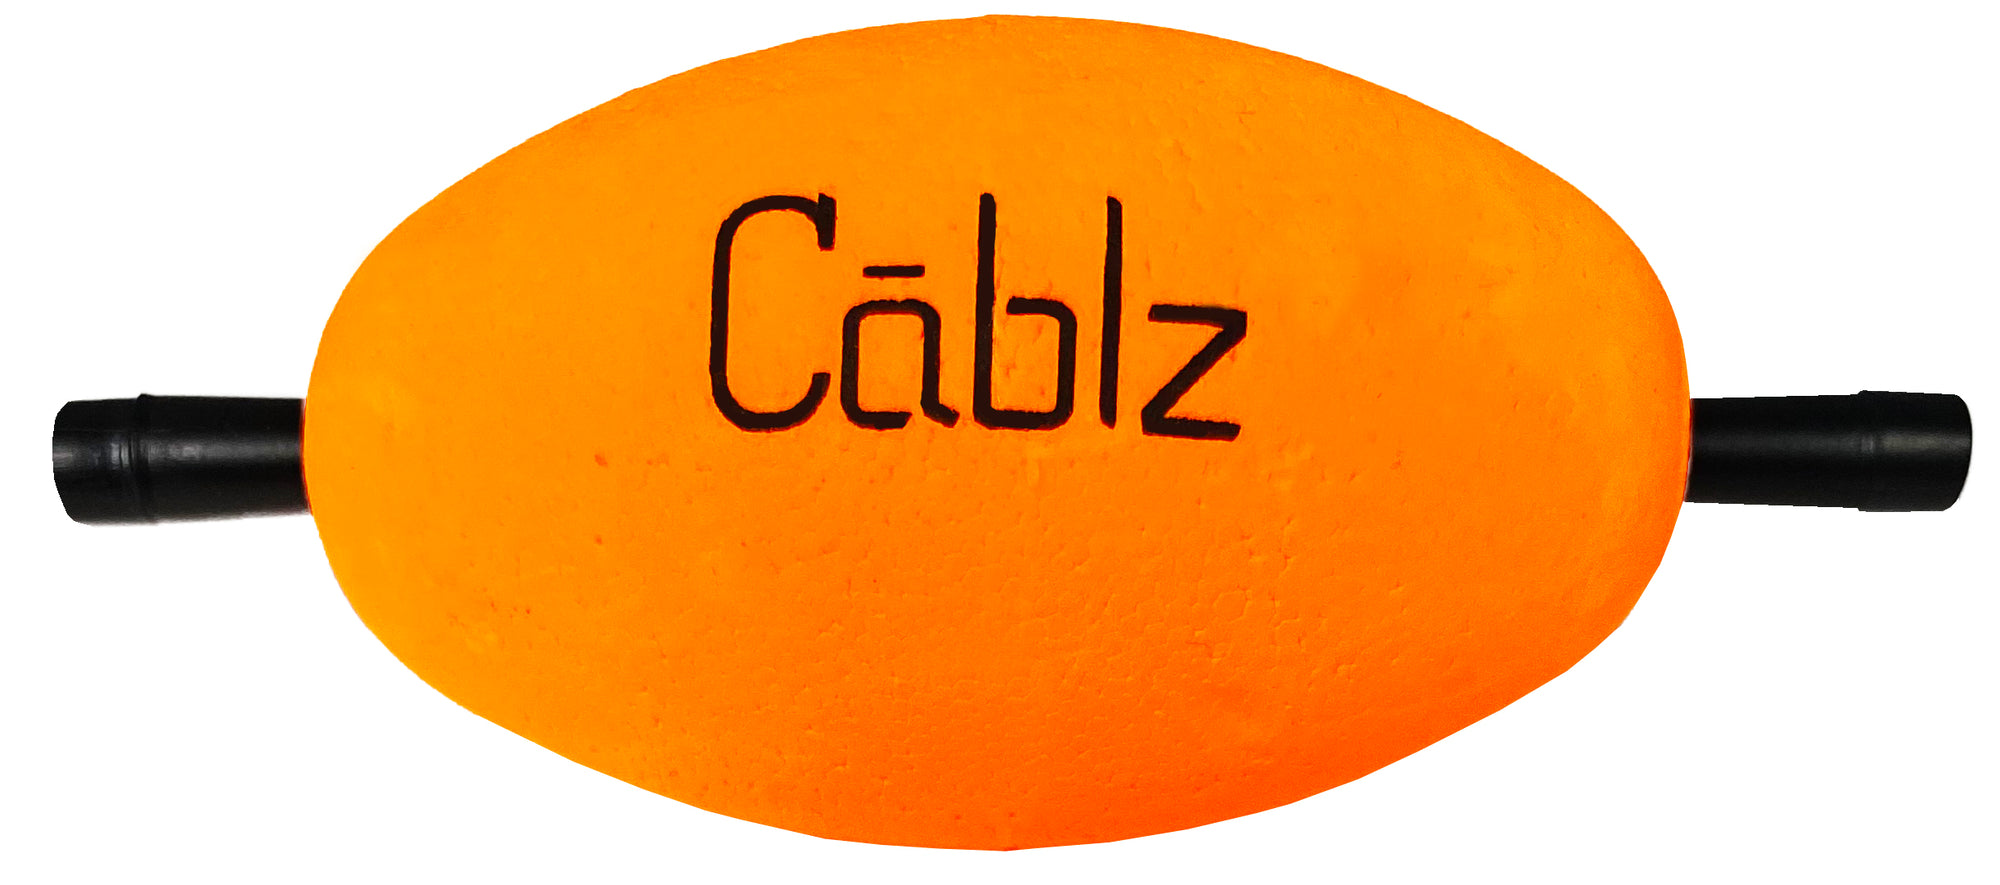 Cablz Flotz - Assorted Colours